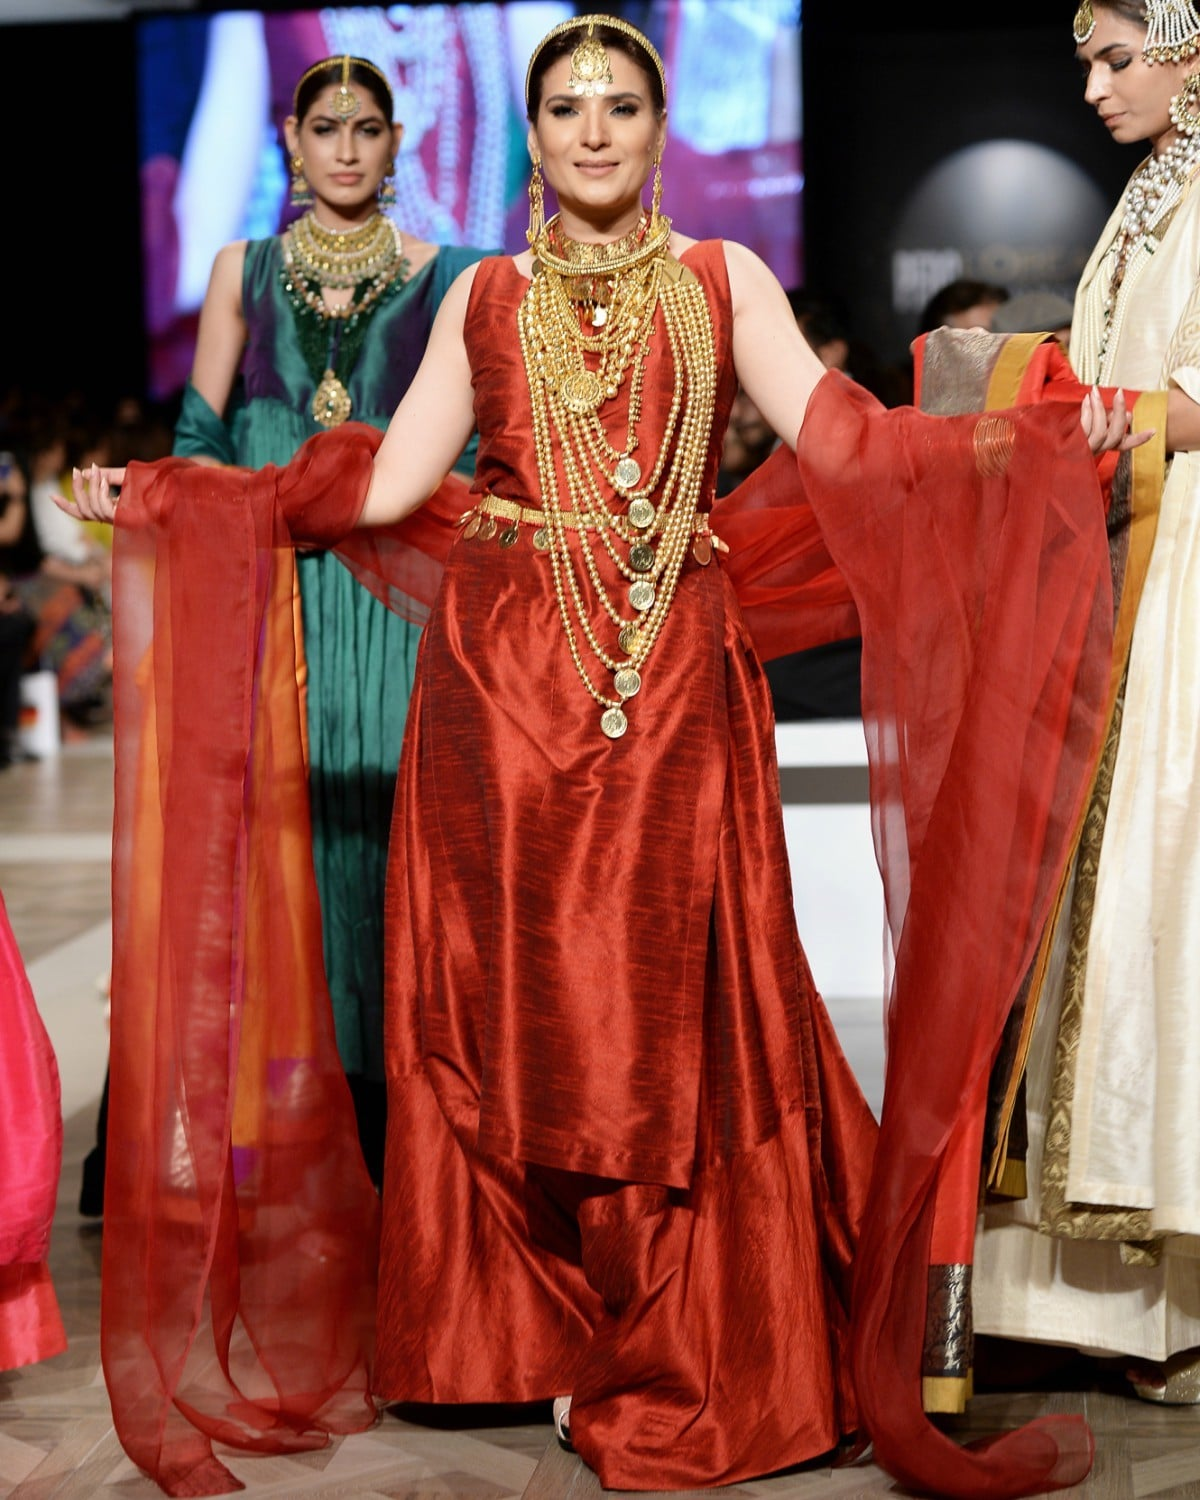 Resham made a stunning showstopper for GOLD by Reama Malik